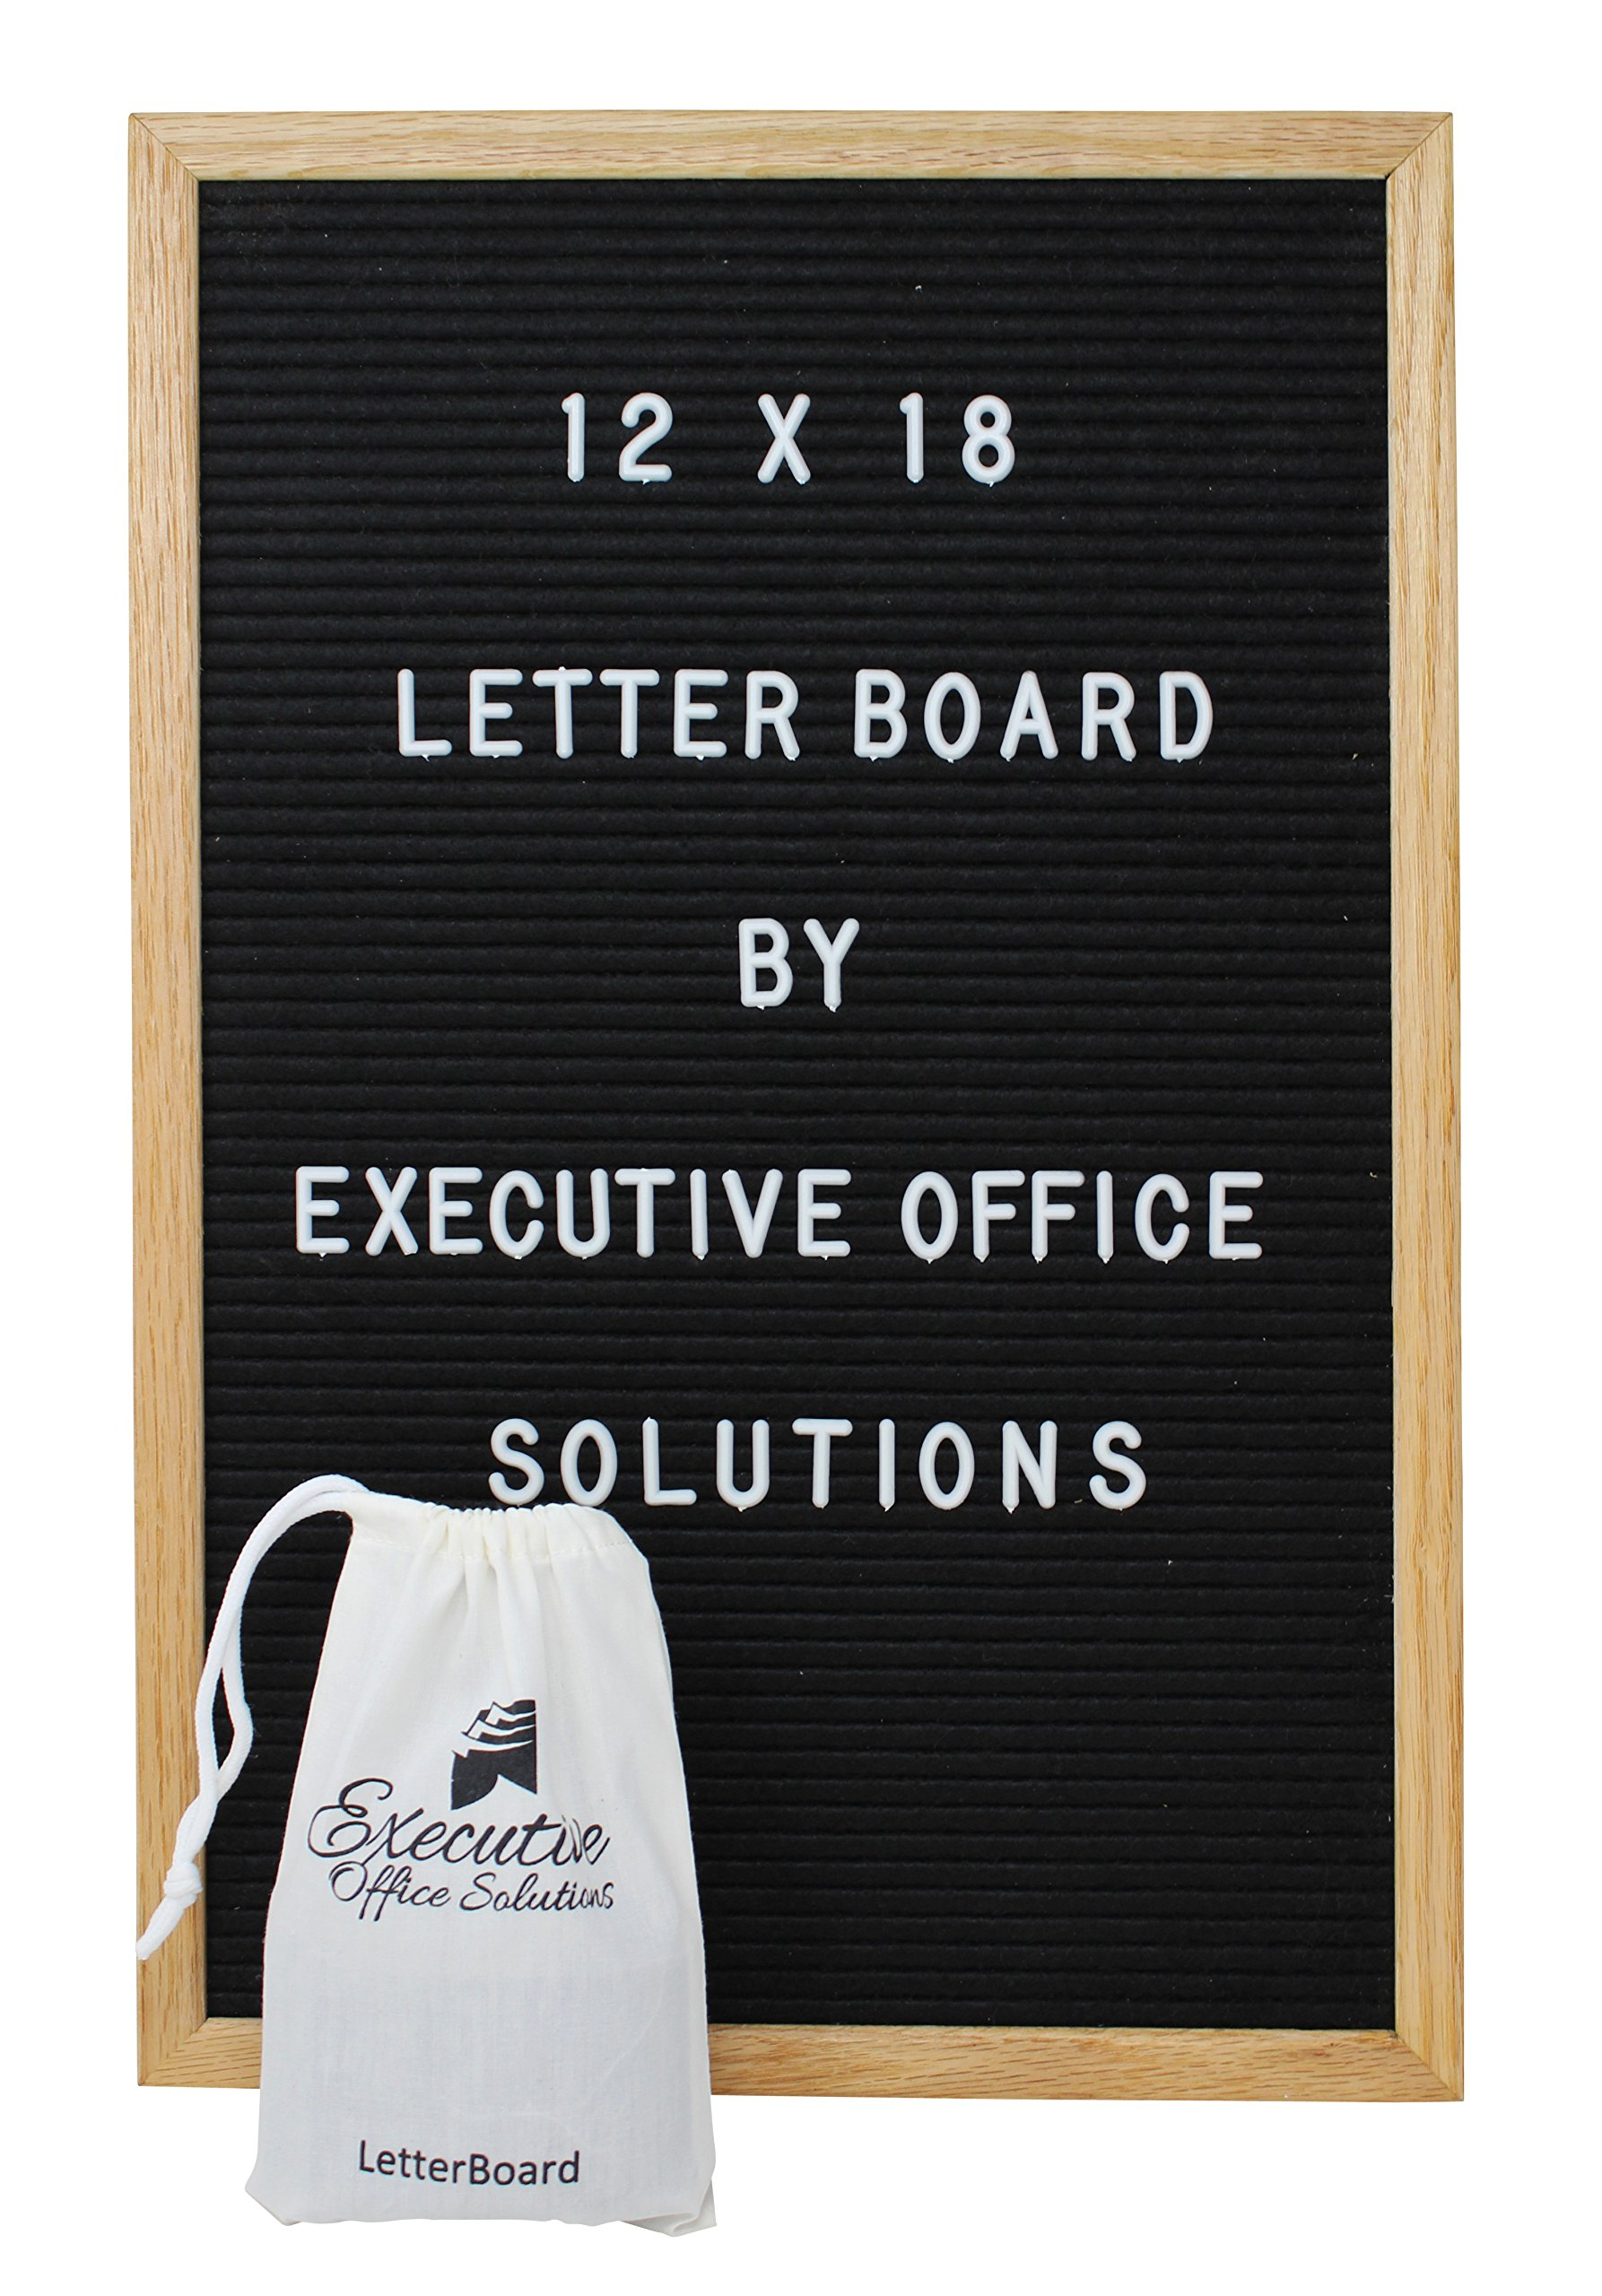 12 X 18 Changeable Letter Board - Black Felt with Solid Oak Frame, Wall Mount, Canvas Bag, and 290 Characters - by Executive Office Solutions